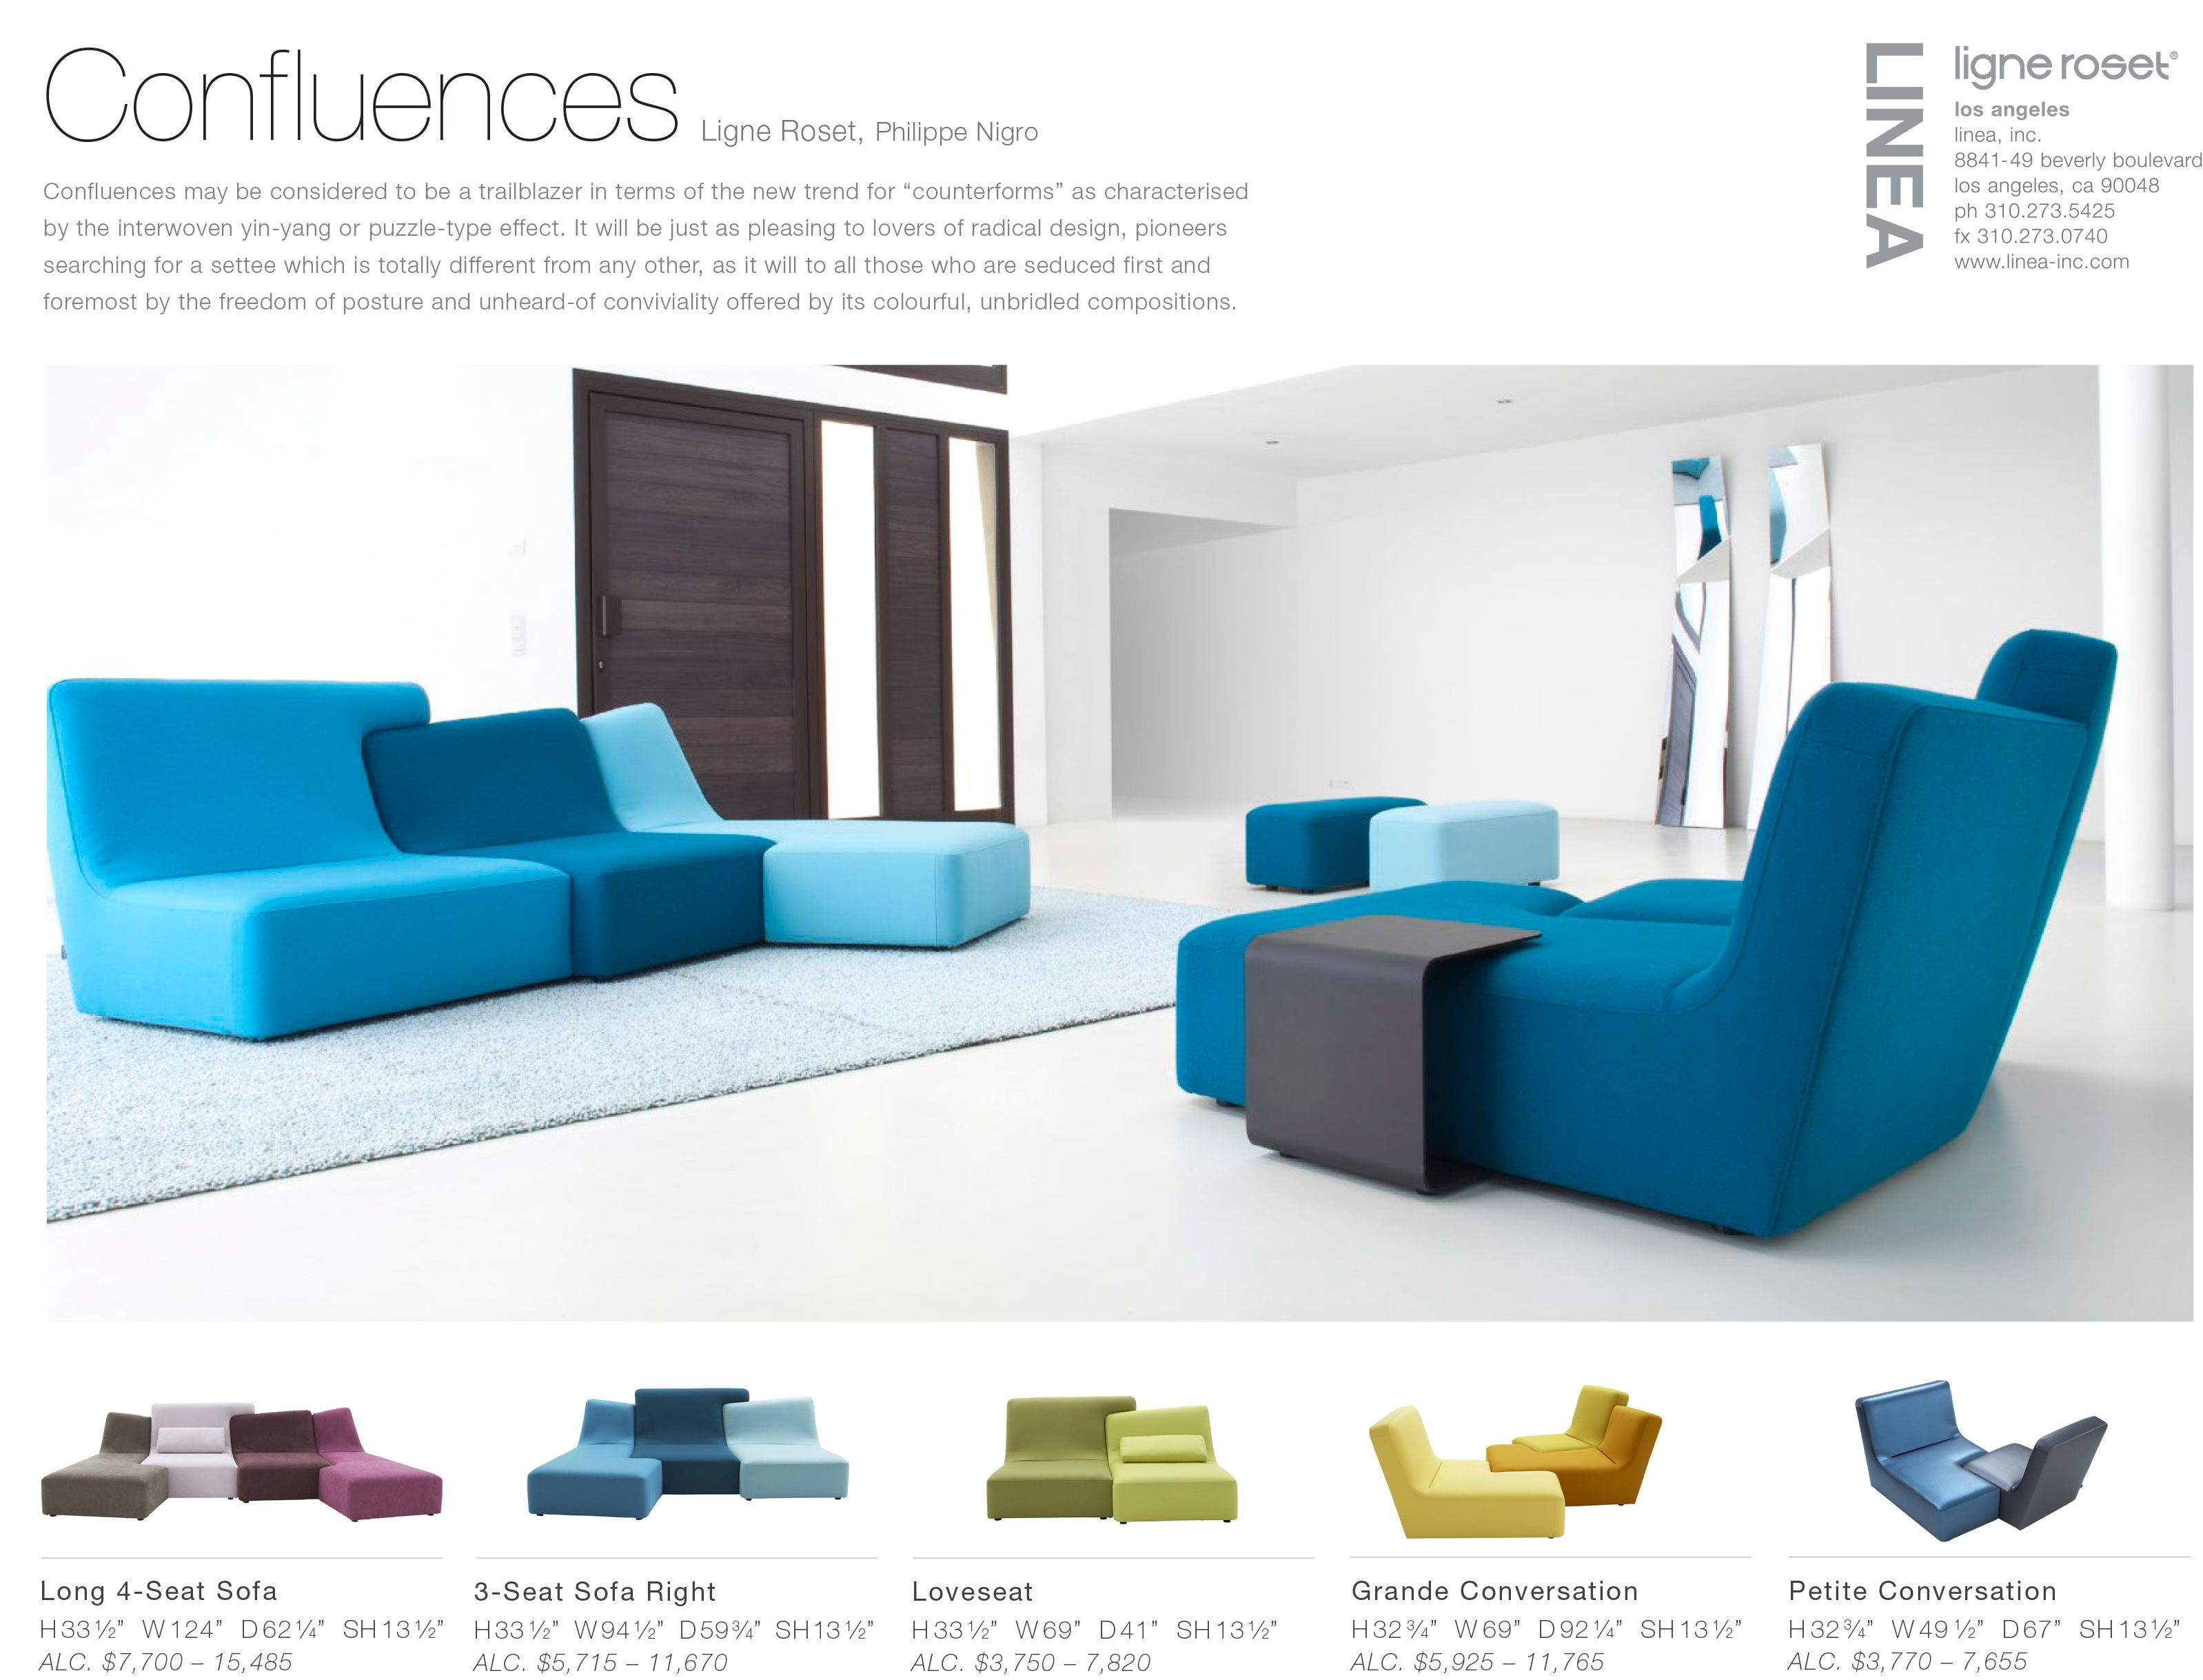 Confluences sofa set by Ligne Roset Linea Prices range from